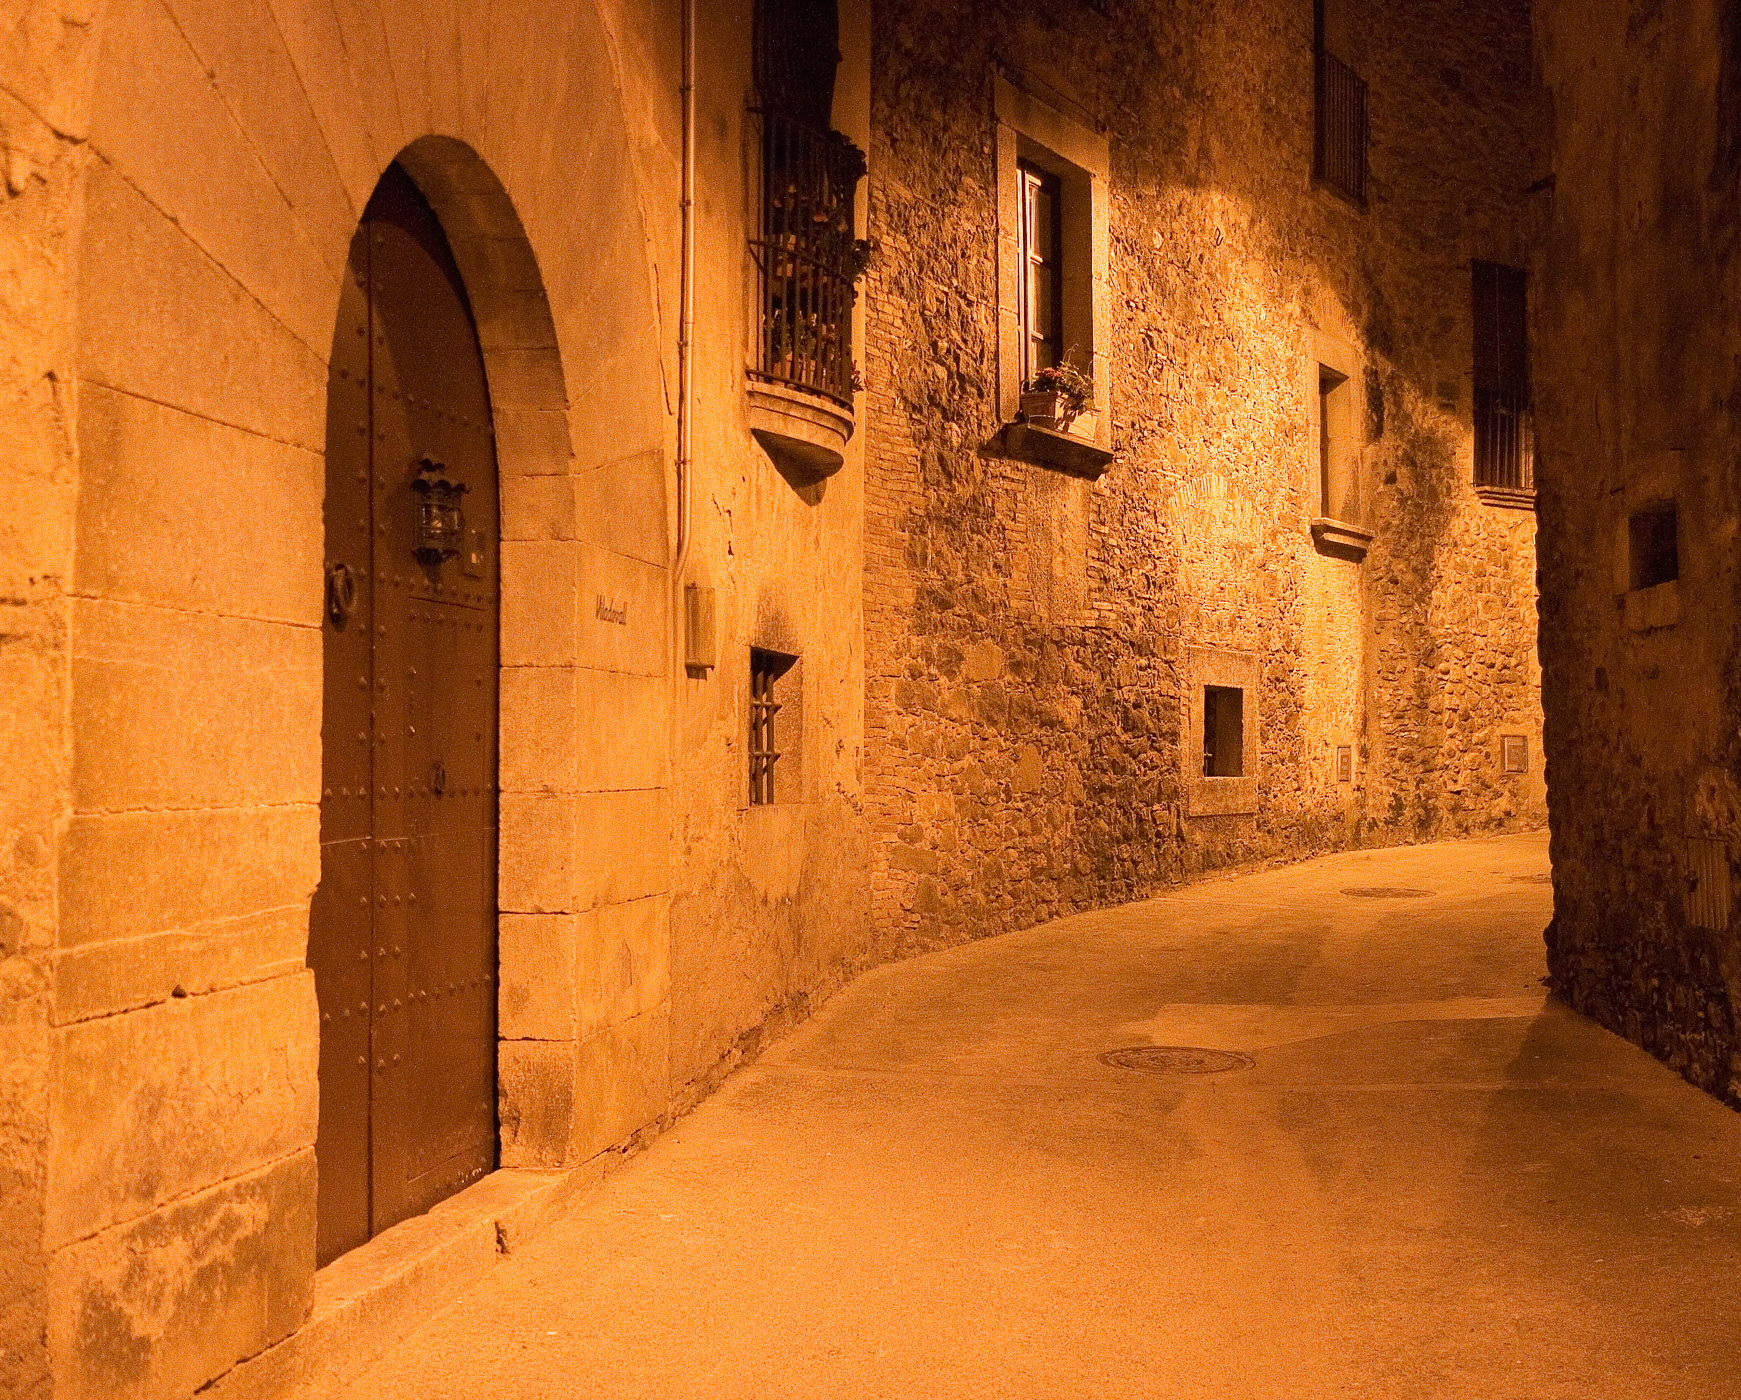 European historic alley at night photo